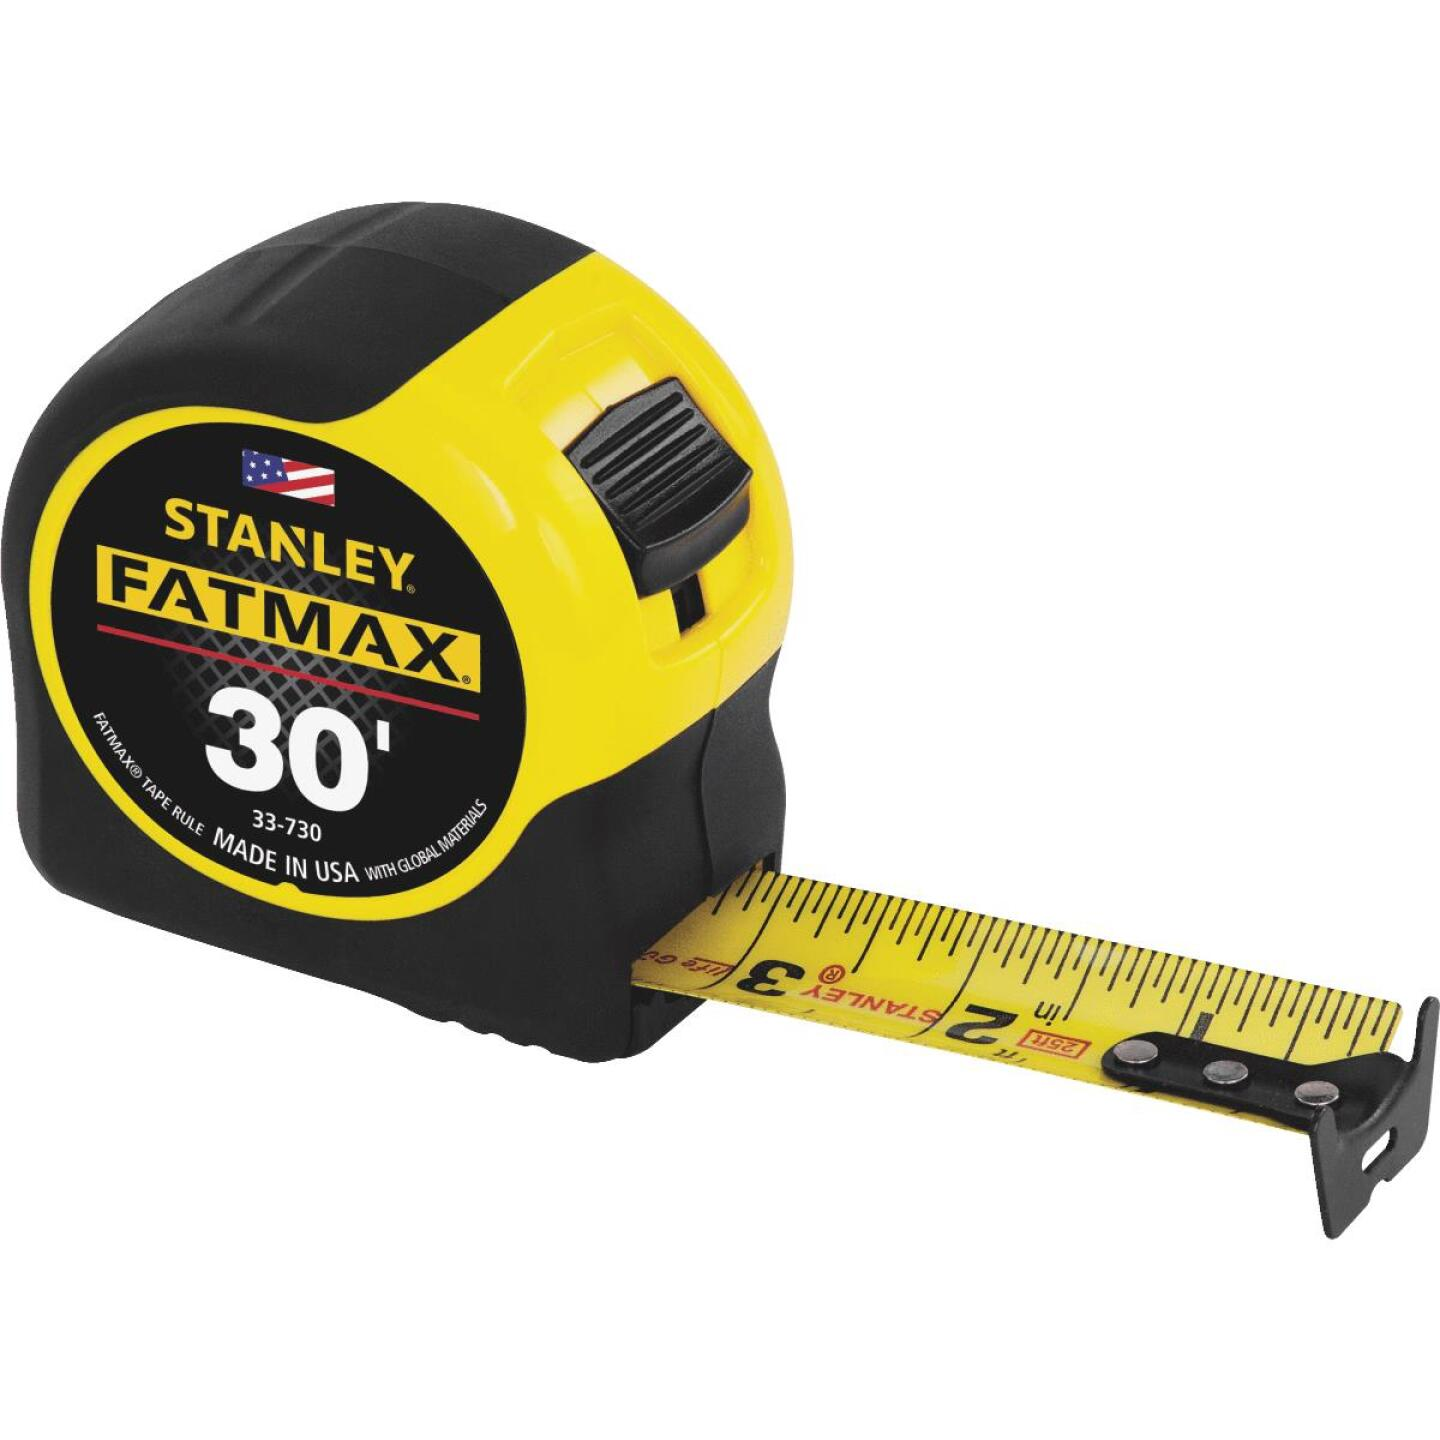 Stanley FatMax 30 Ft. Classic Tape Measure with 11 Ft. Standout Image 1